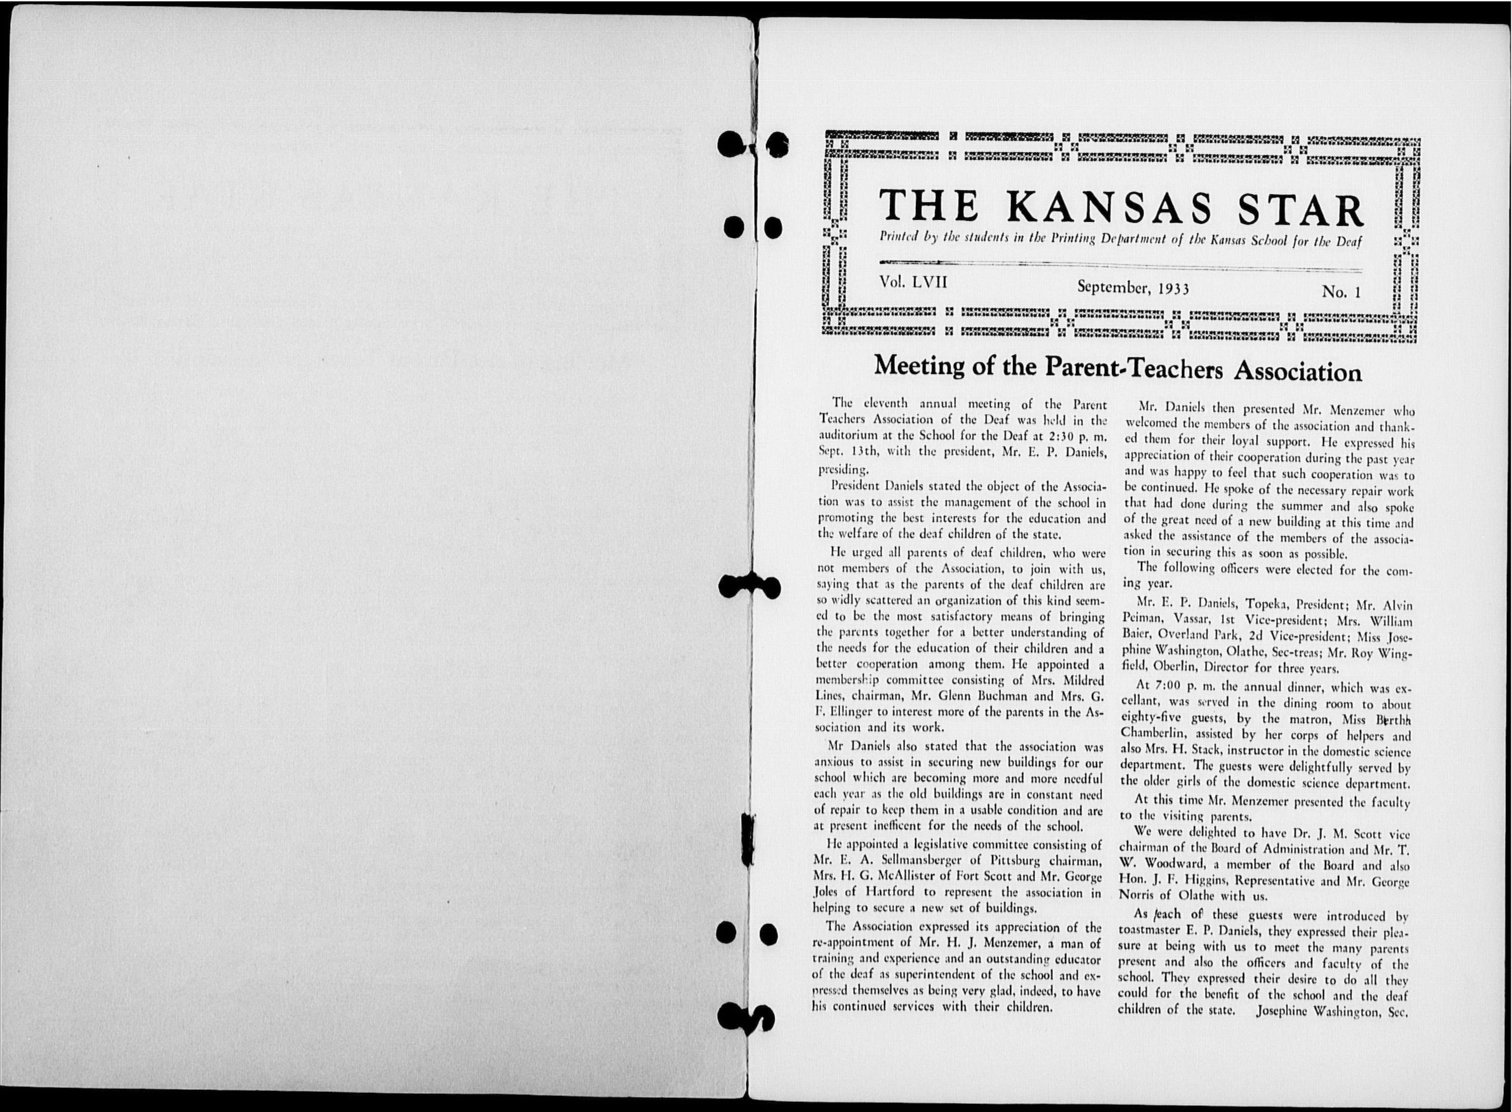 The Kansas Star, volume LVII, number 1 - Inside cover-1